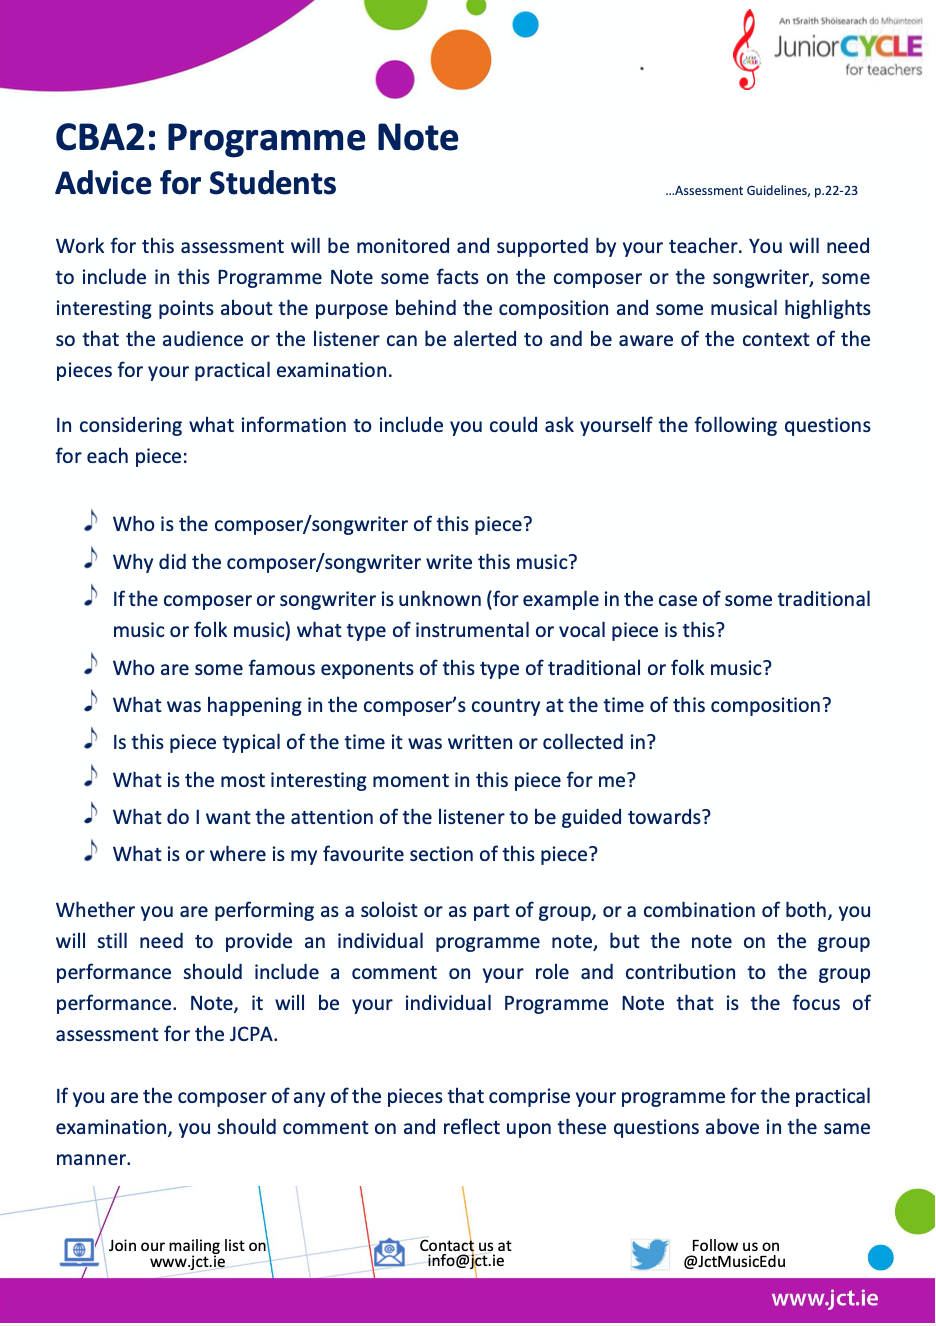 CBA2: Programme Note - Advice for Students